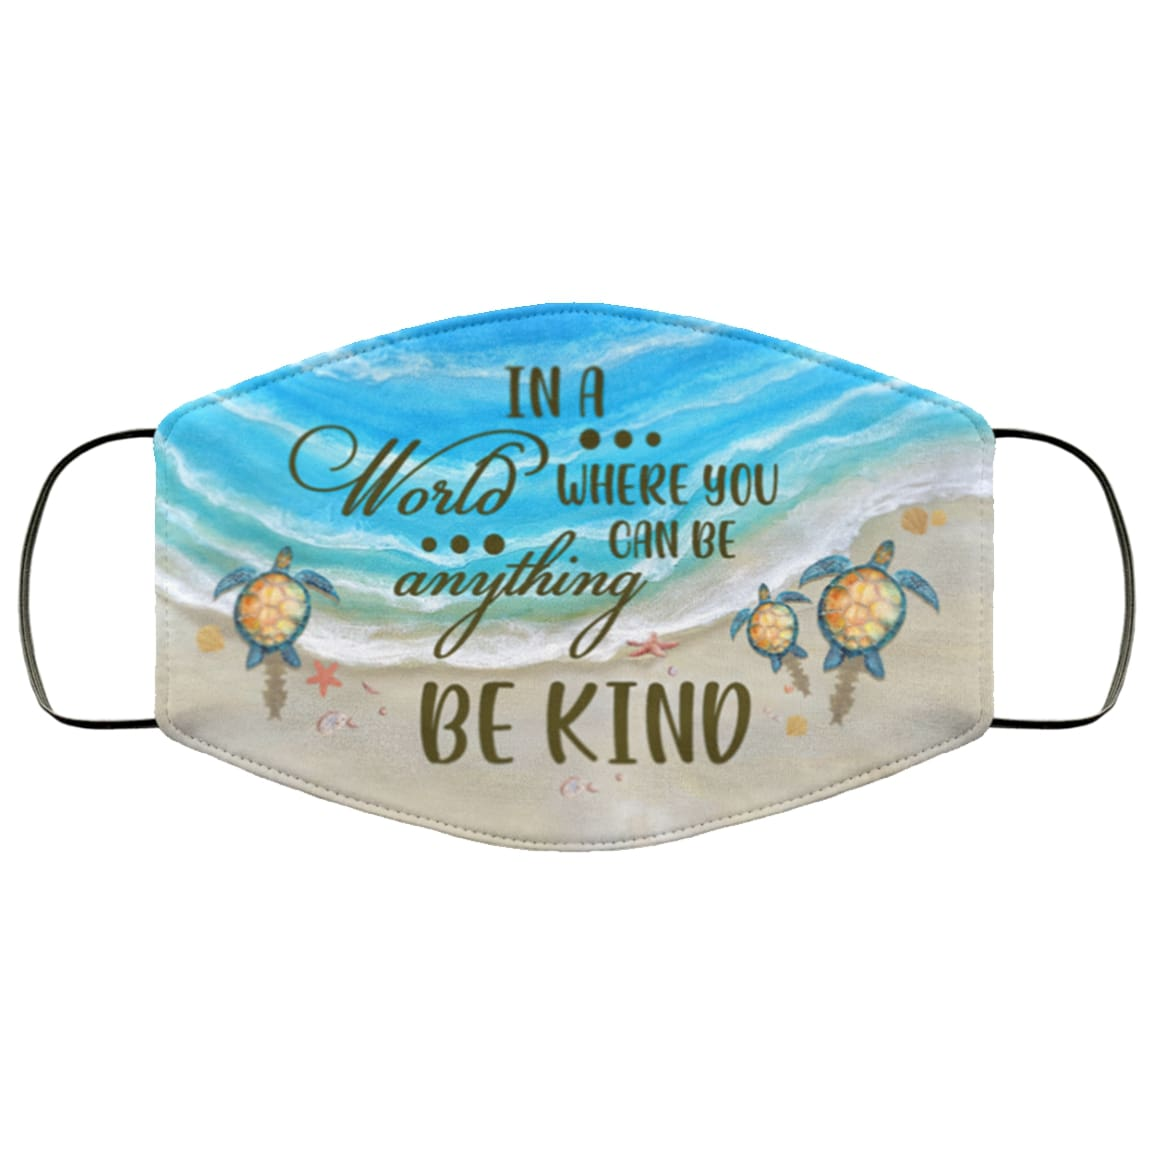 In a world where you can be anything be kind sea turtle face mask 2